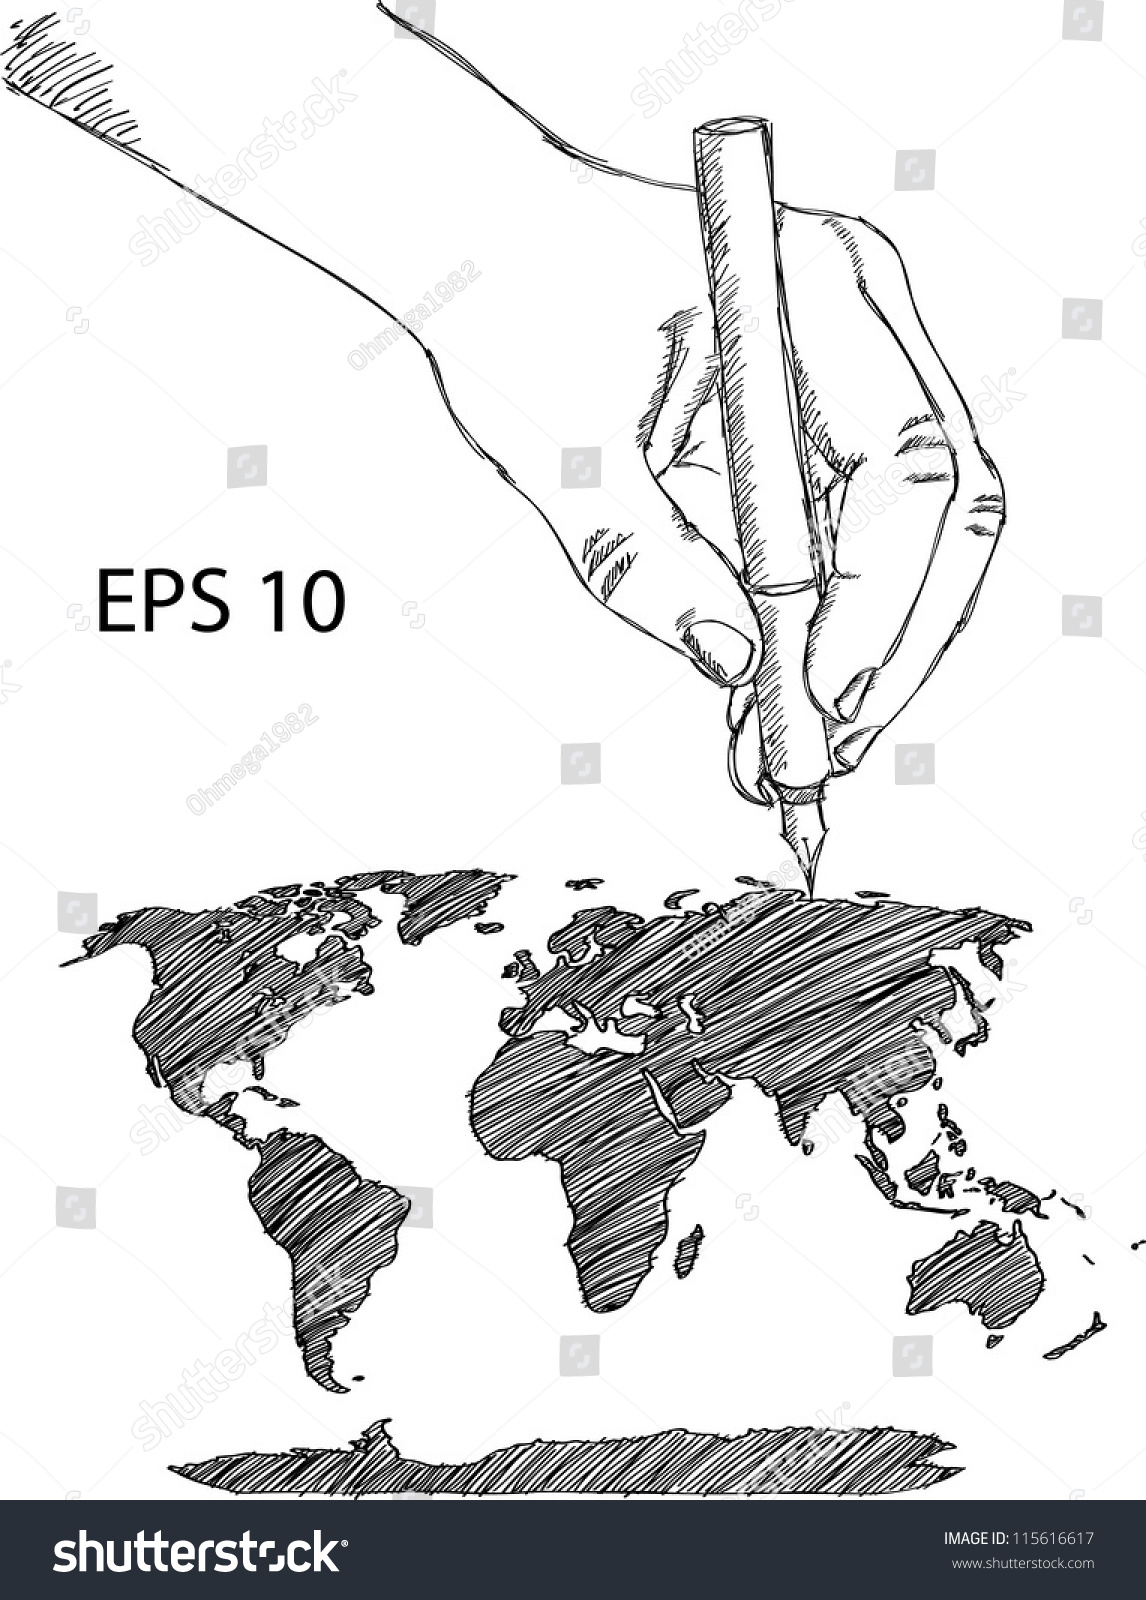 Hand drawing earth globe world map vectores en stock 115616617 hand drawing earth globe with world map detail vector line sketch up illustrator eps 10 gumiabroncs Images